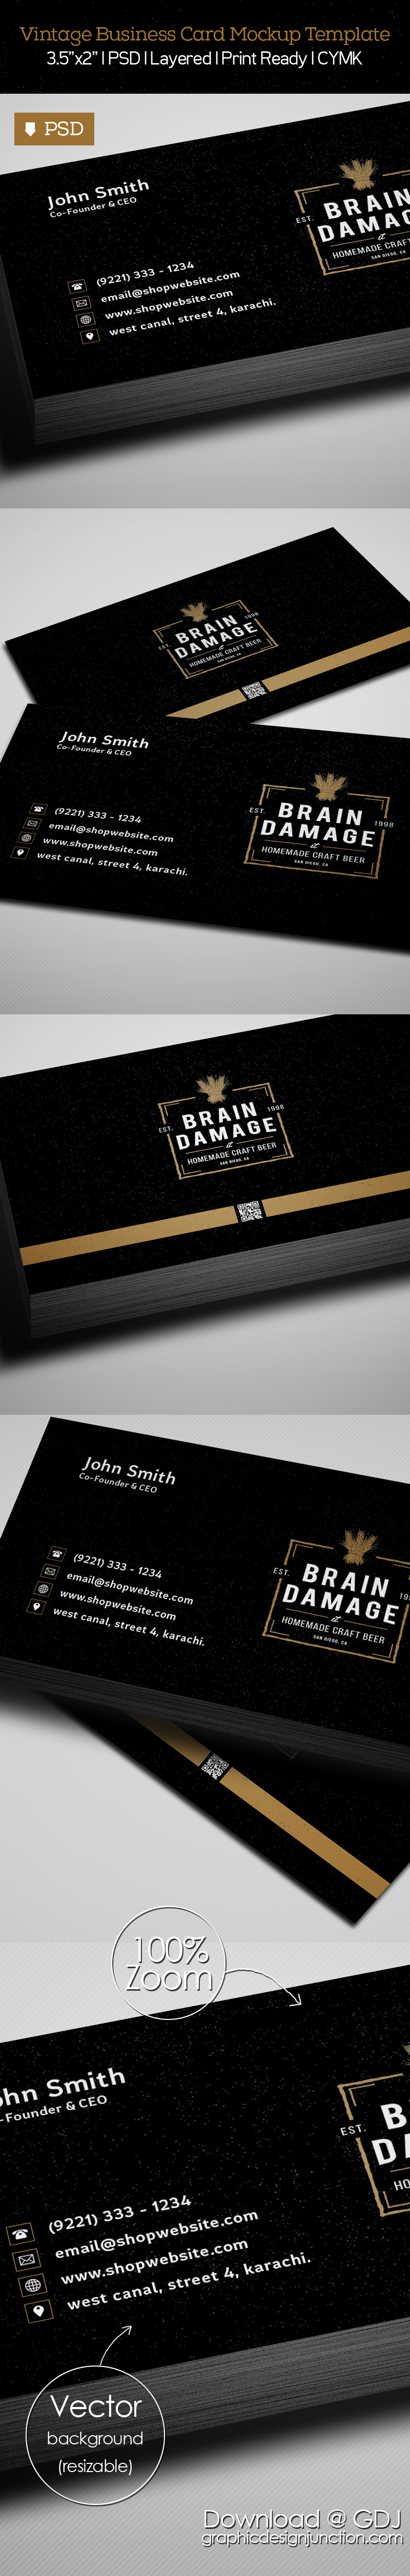 free vintage black business card psd template freebies